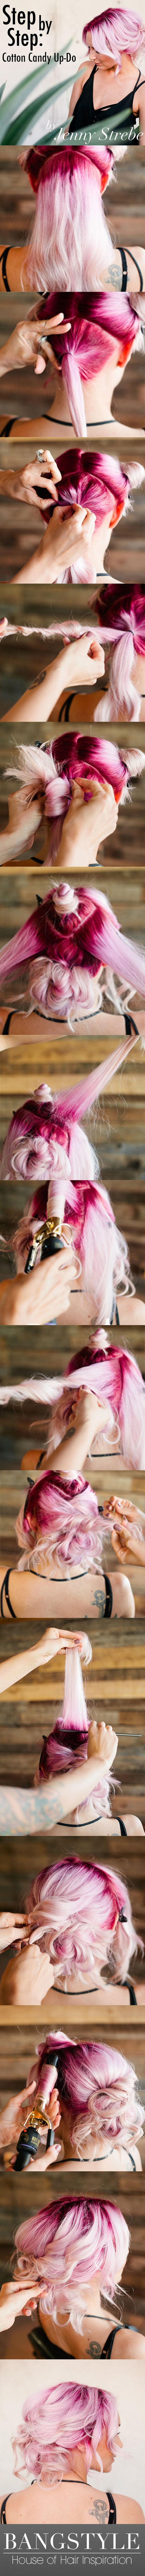 Pink cotton candy hair updo tutorial by Jenny Strebe